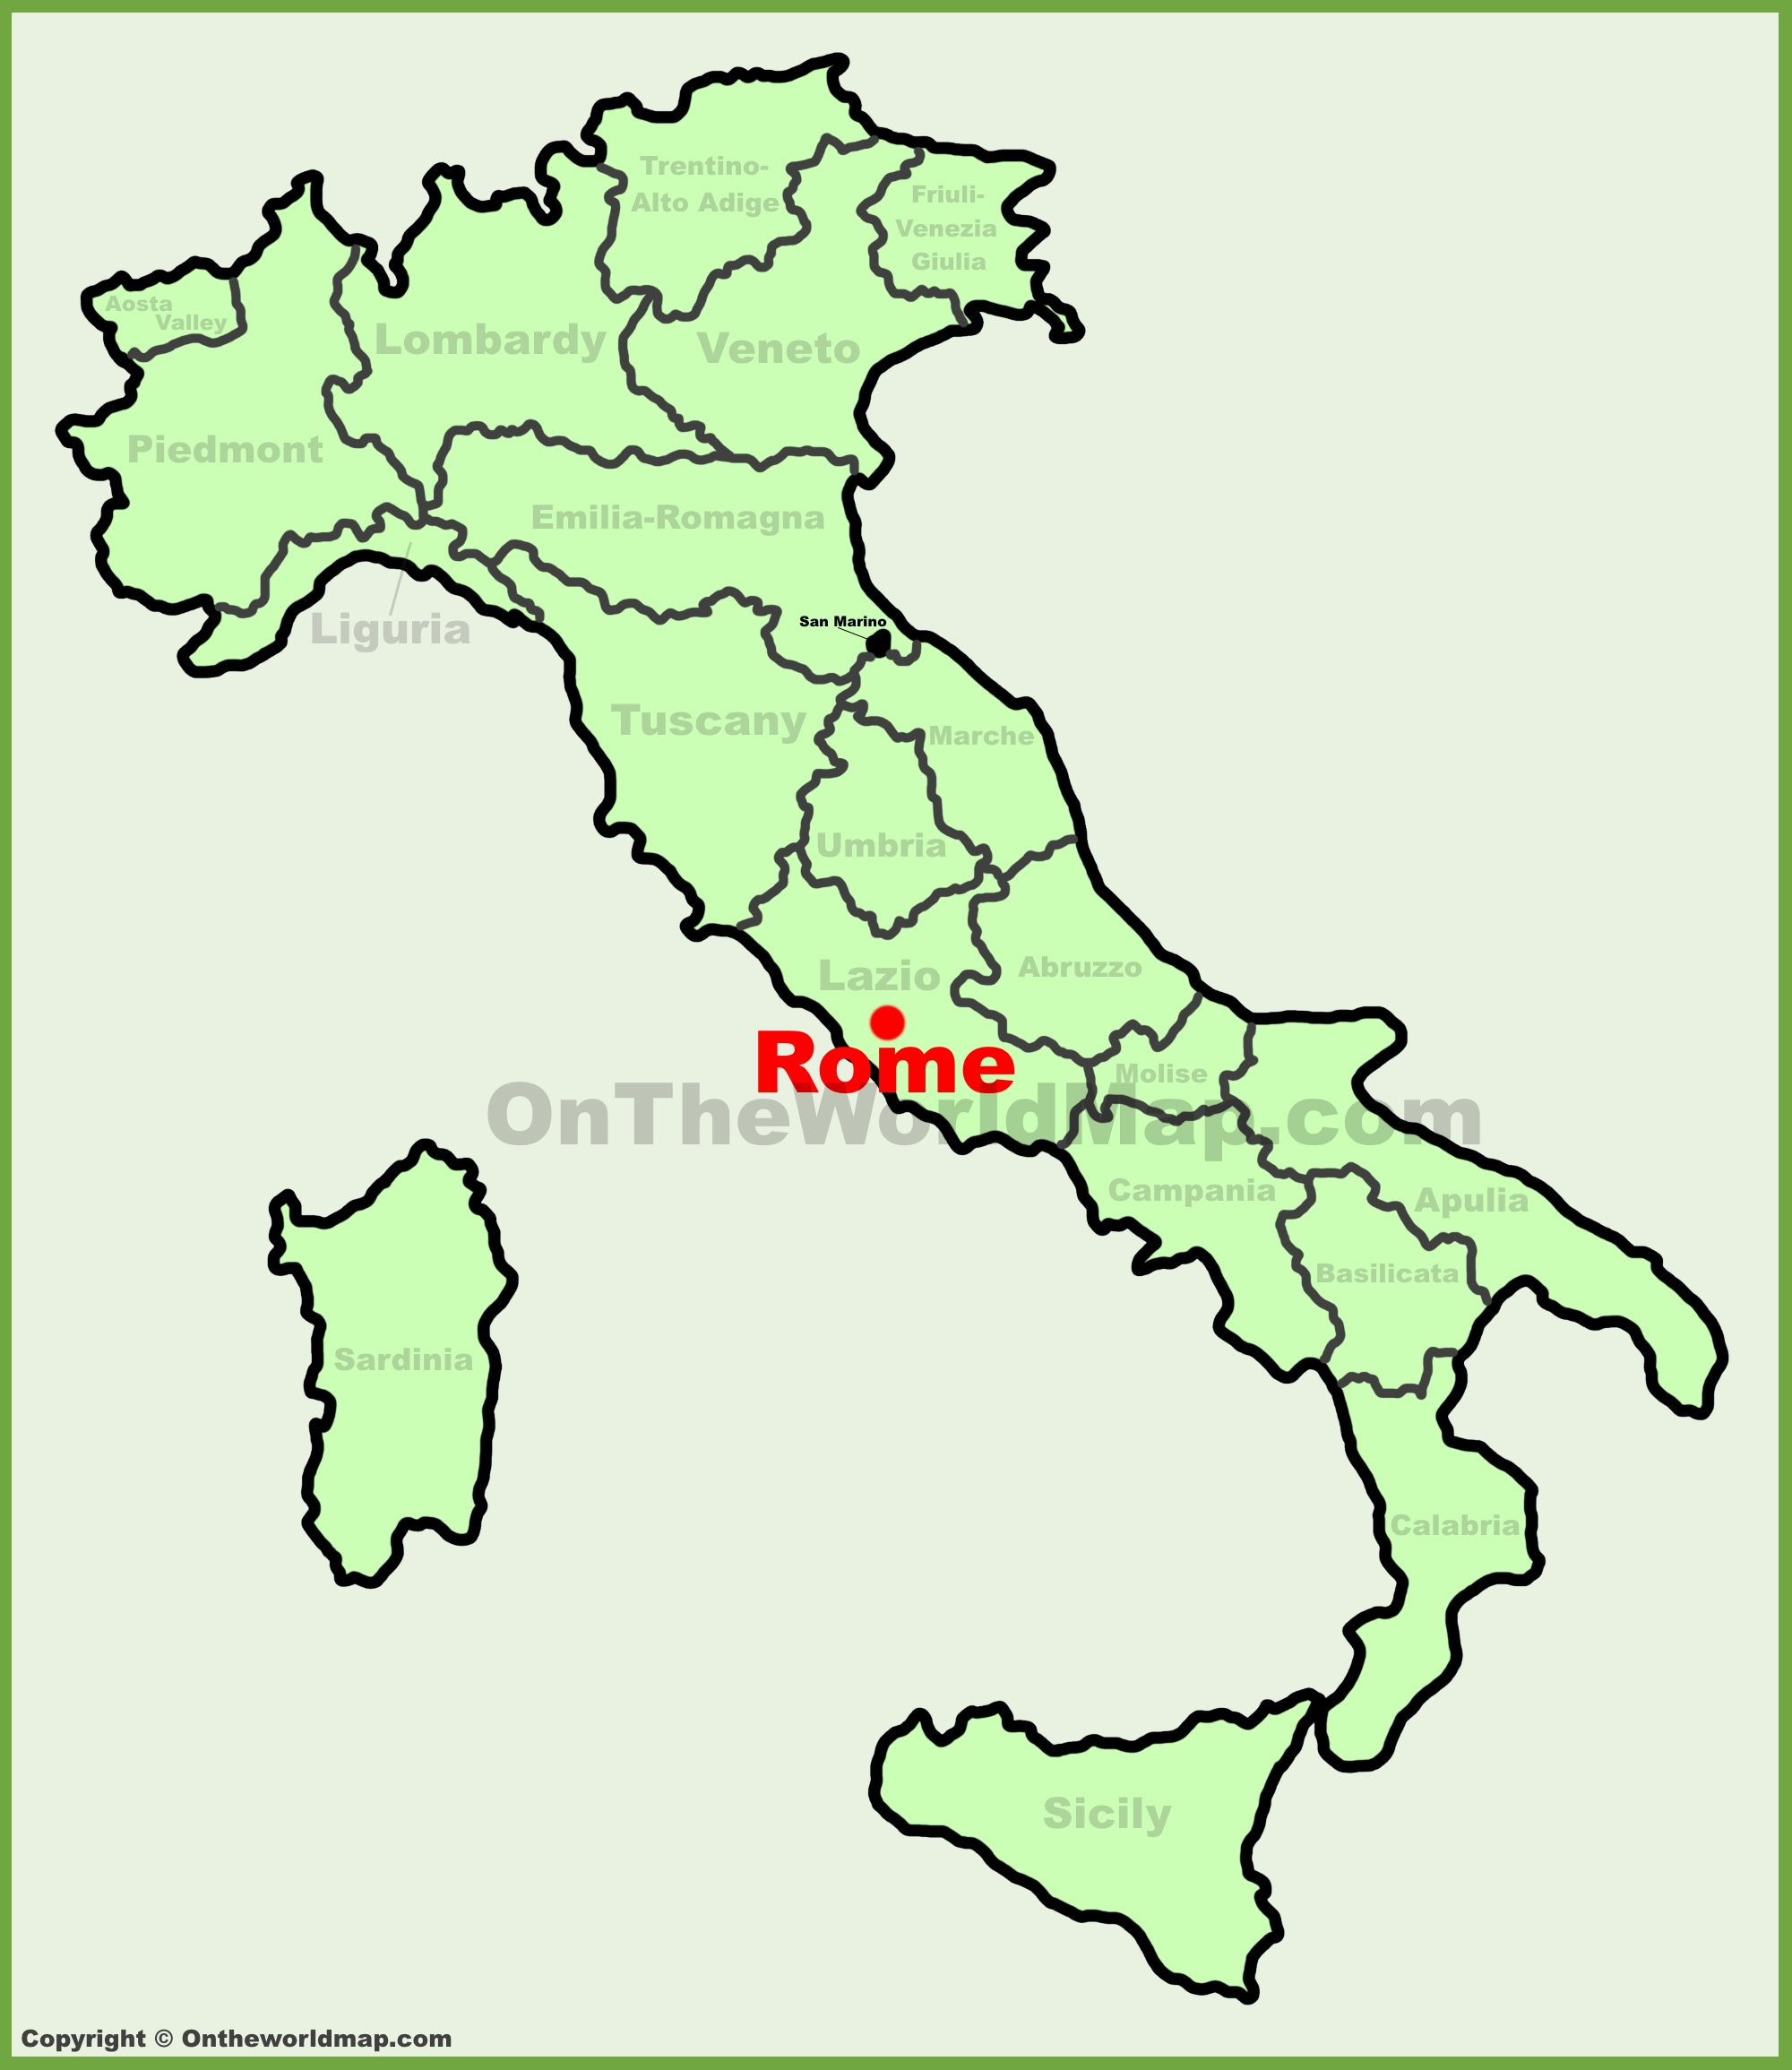 Where Is Rome On The Map Rome location on the Italy map Where Is Rome On The Map